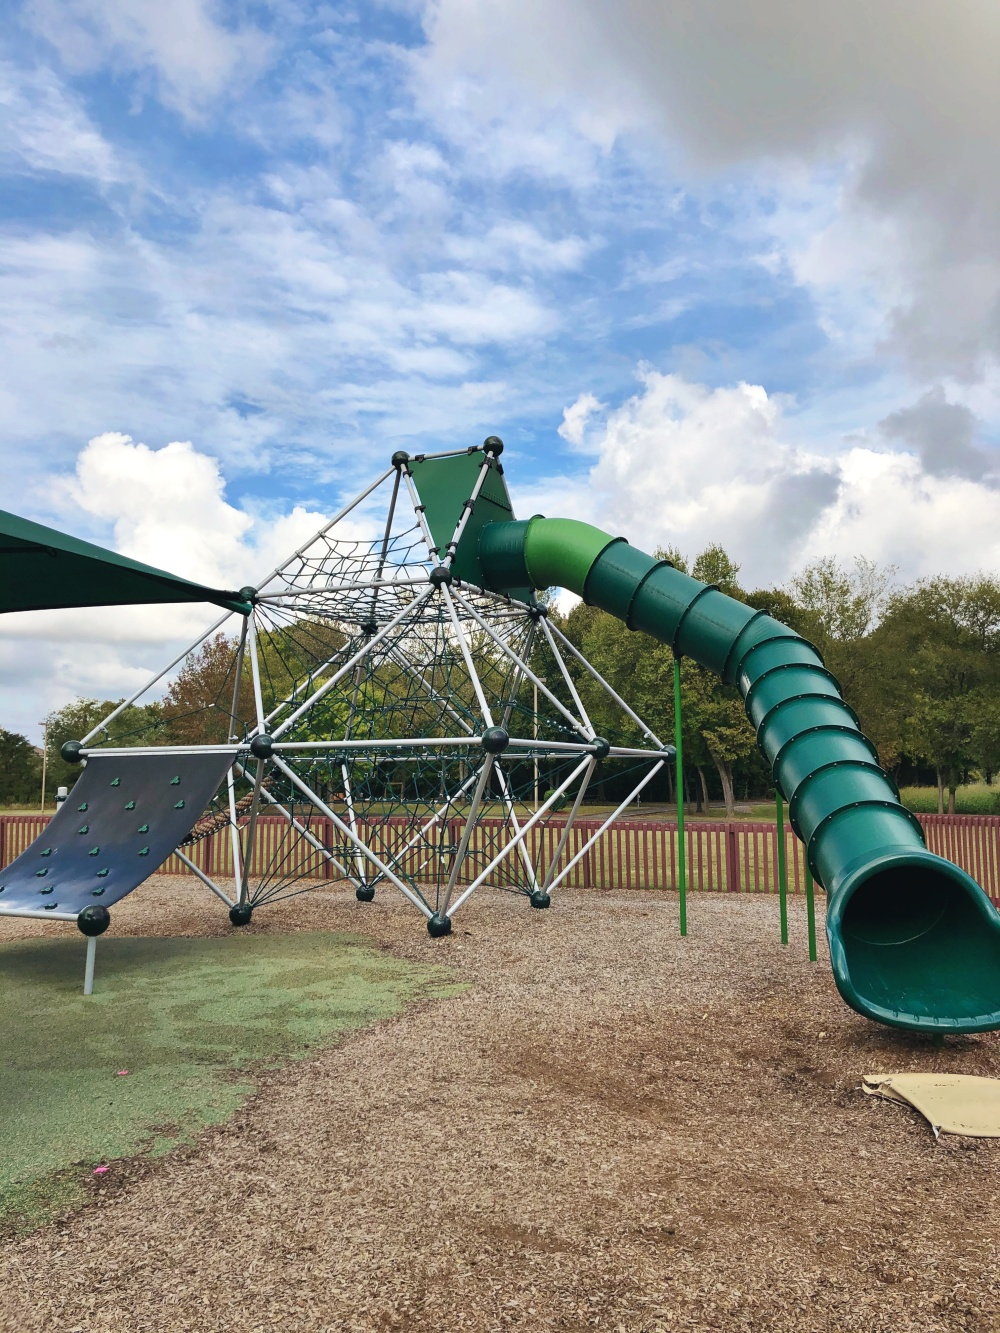 large green rope climbing structure and tall green slide at Don Fox Community Park in Lebanon, TN